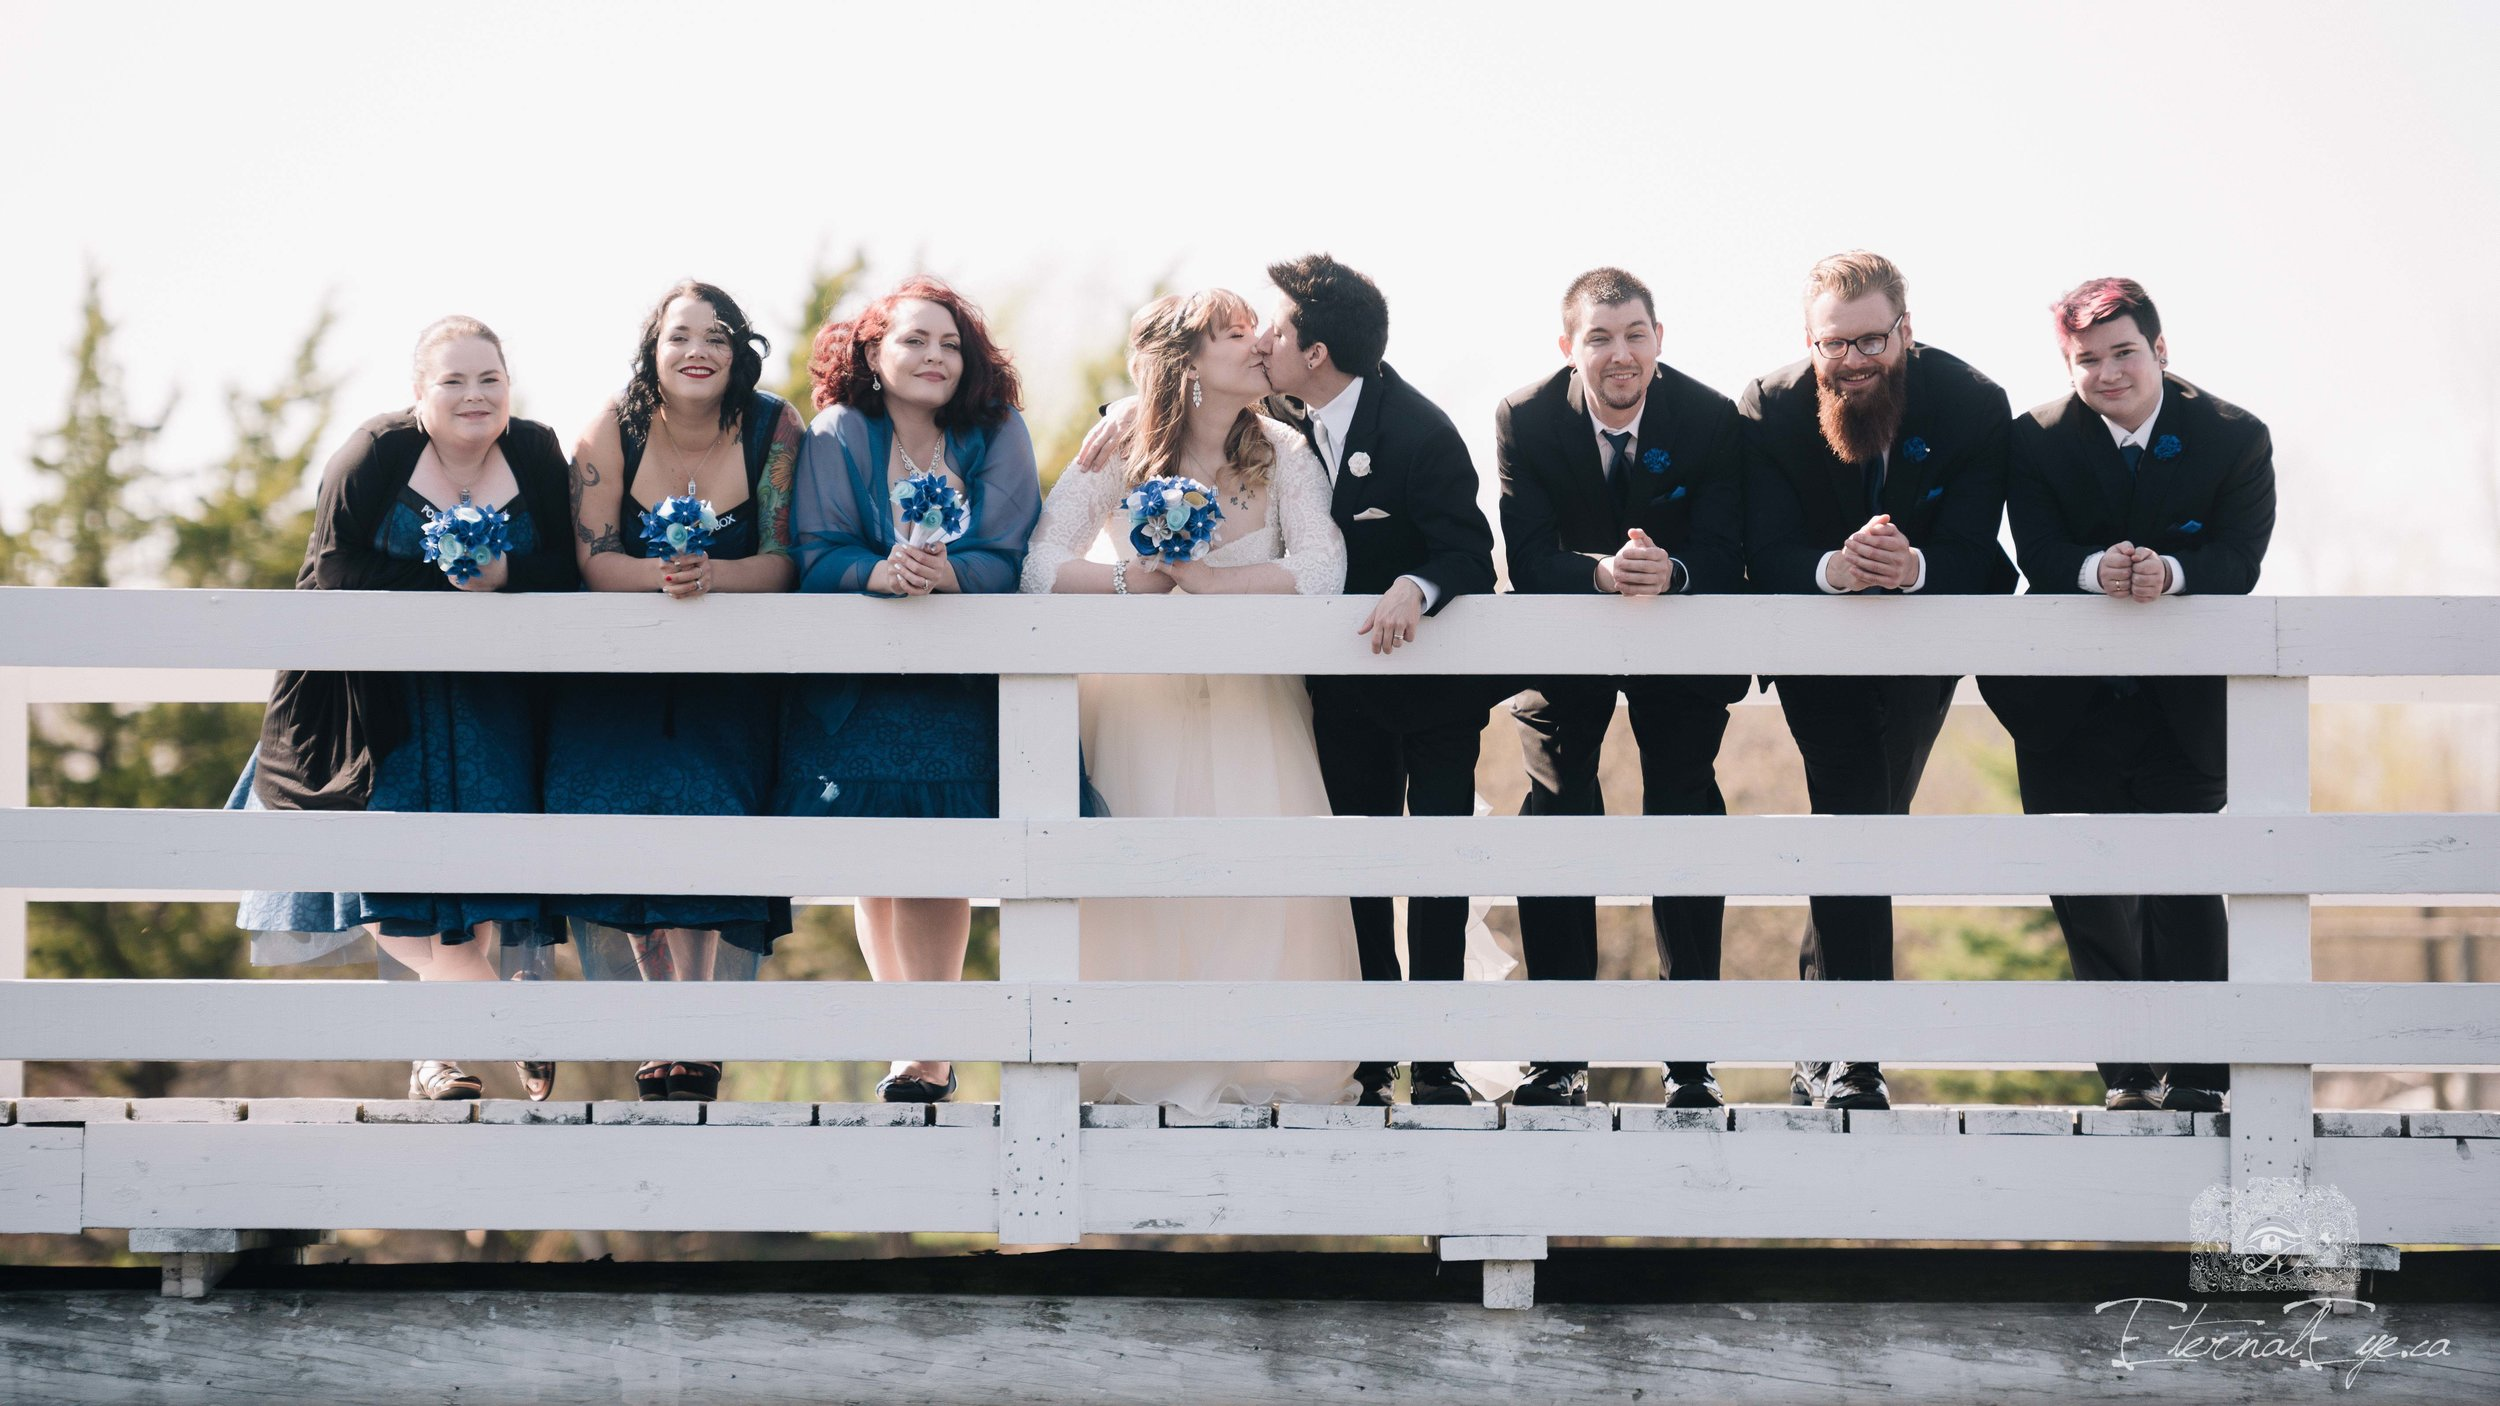 Shannon and Tristan-April 28, 2017 - 134.jpg